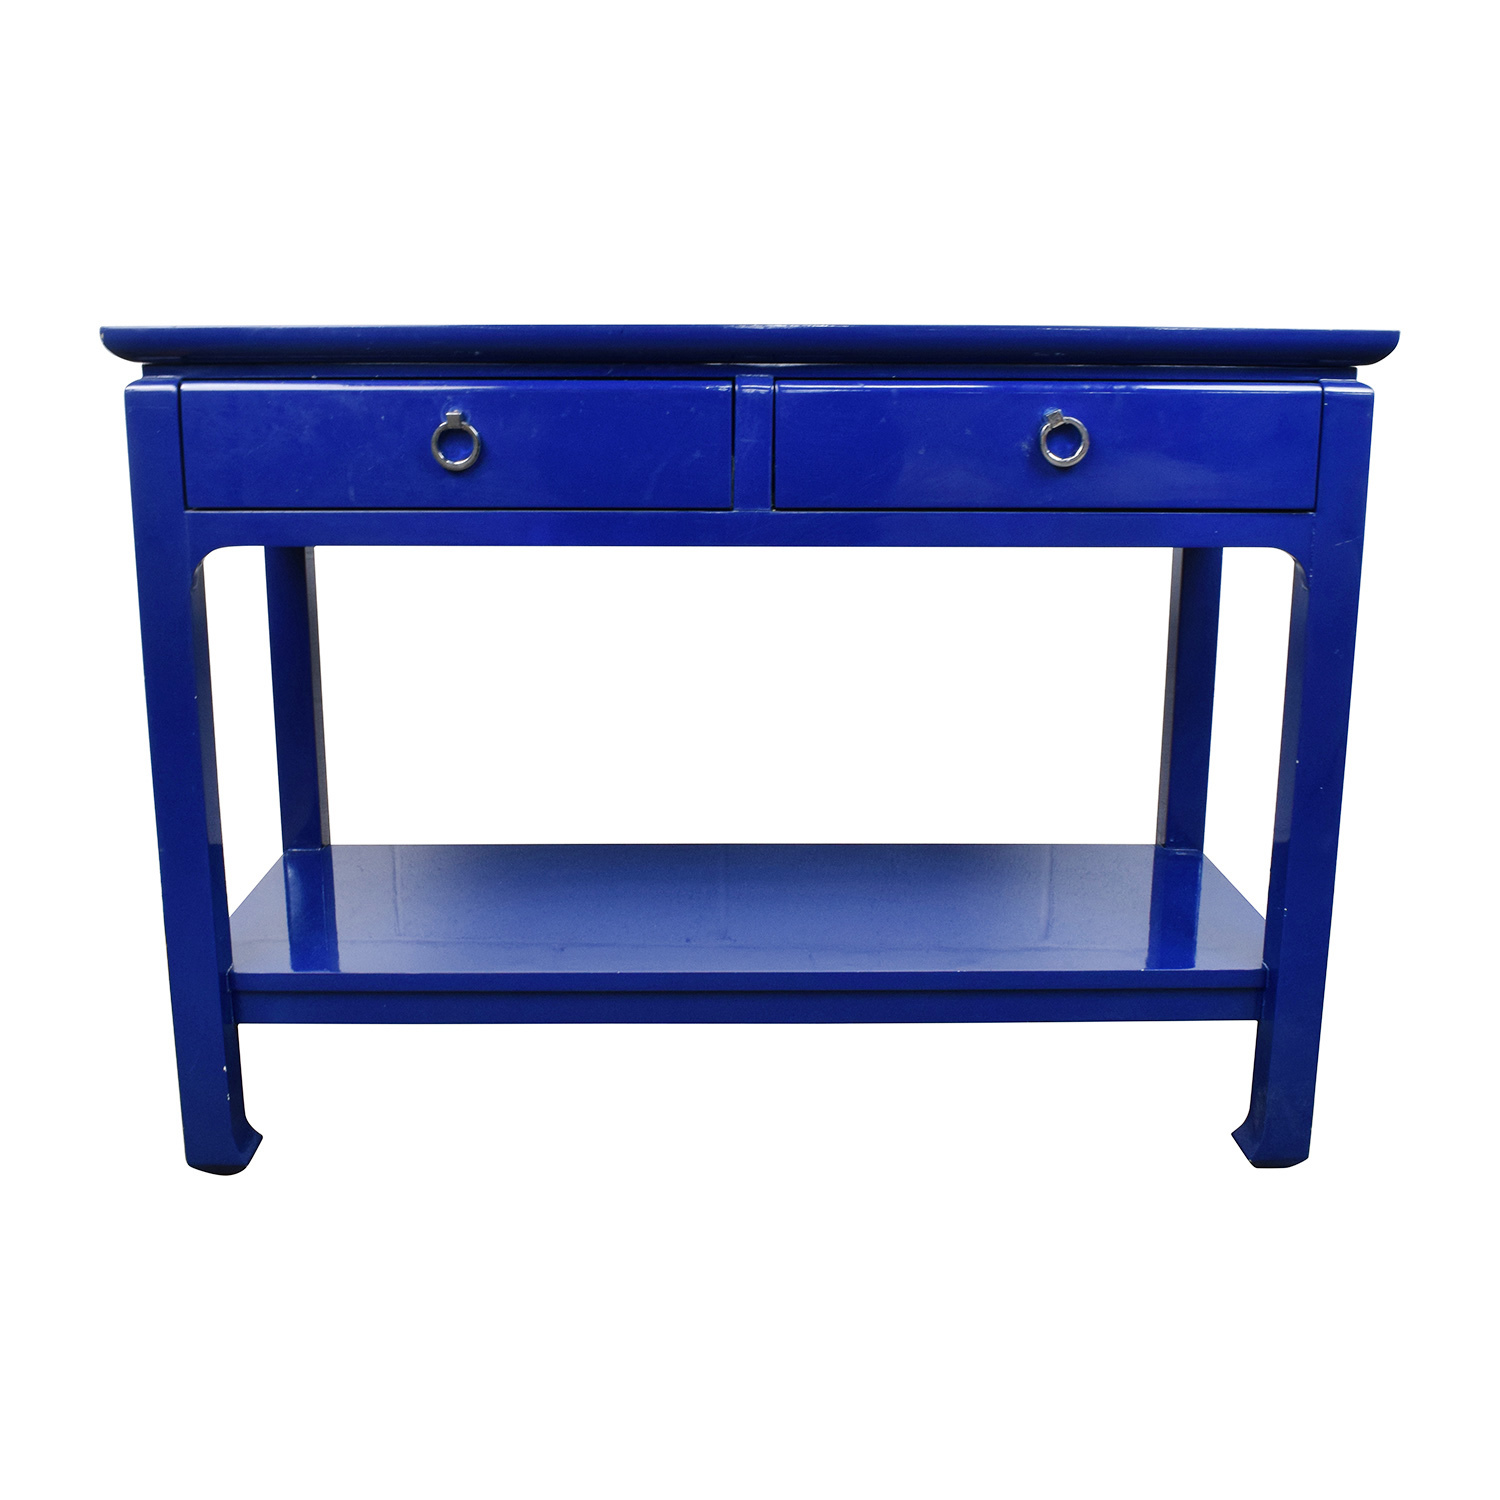 Bruna Bruna Modern Classic Blue Lacquer Chinoiserie Console Table Storage